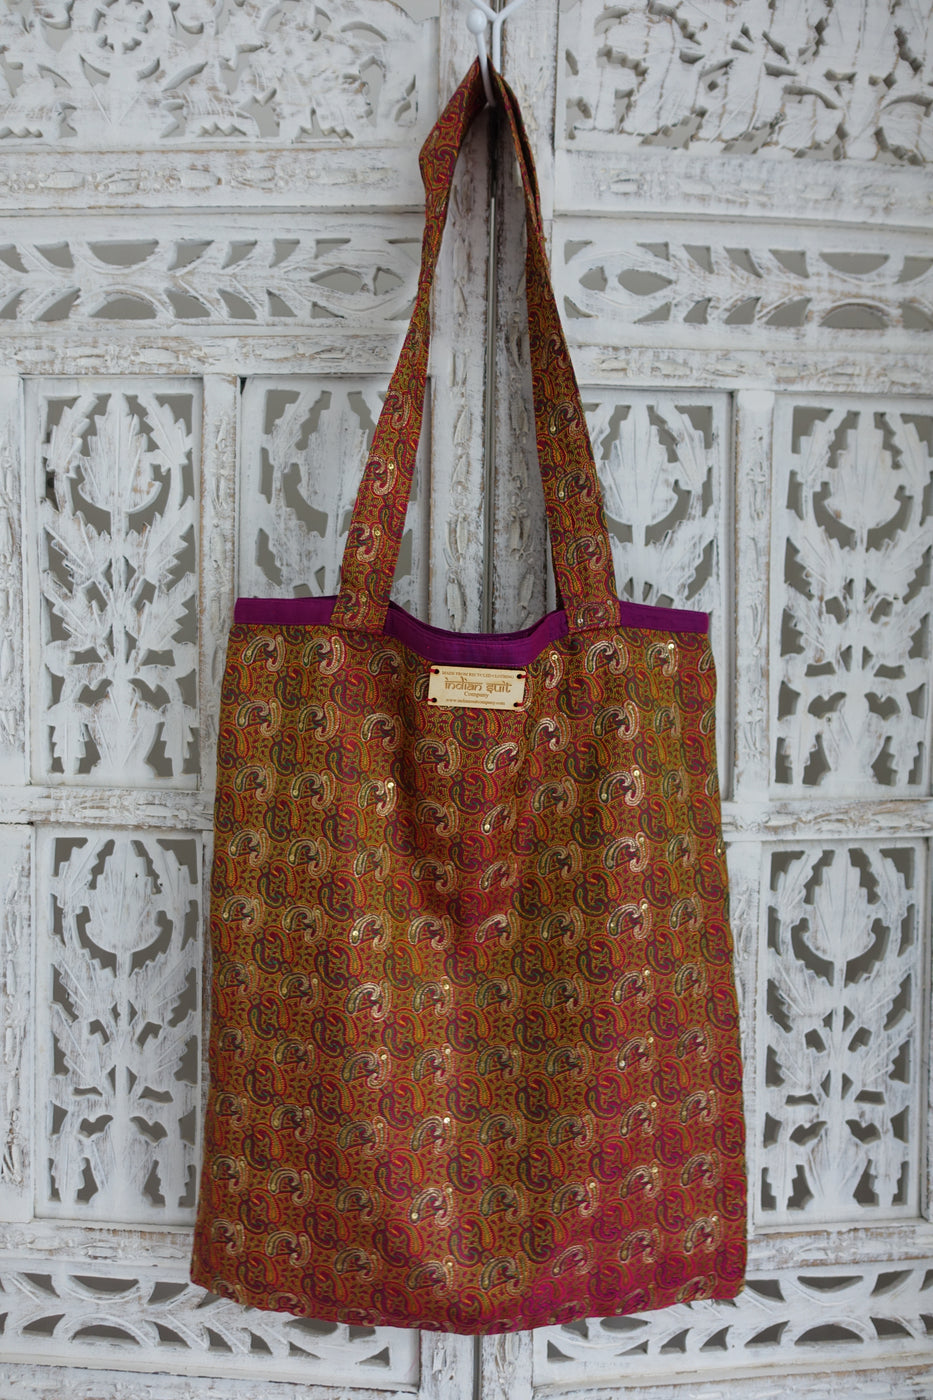 Vintage Paisley Bag Banarsi Brocade Tilla Bag - Indian Suit Company